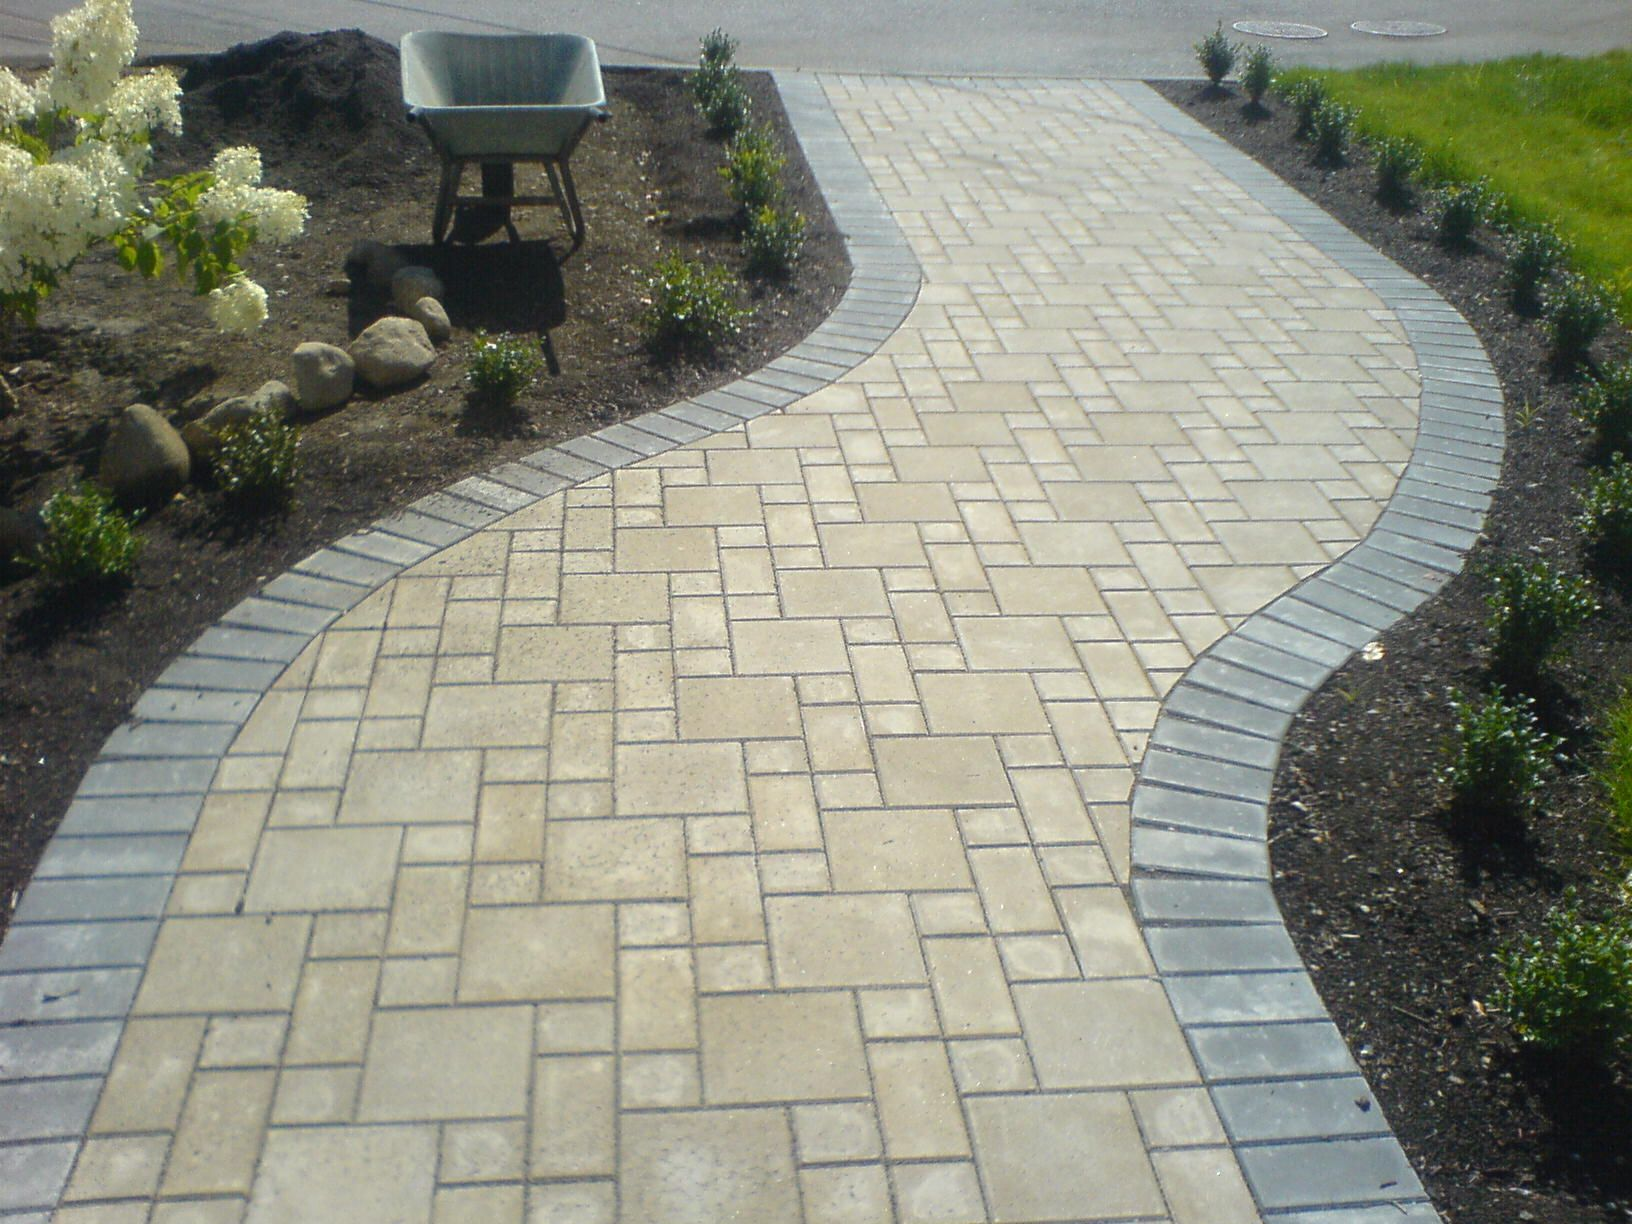 Paver stone patio designs paving stone patio for Paved garden designs